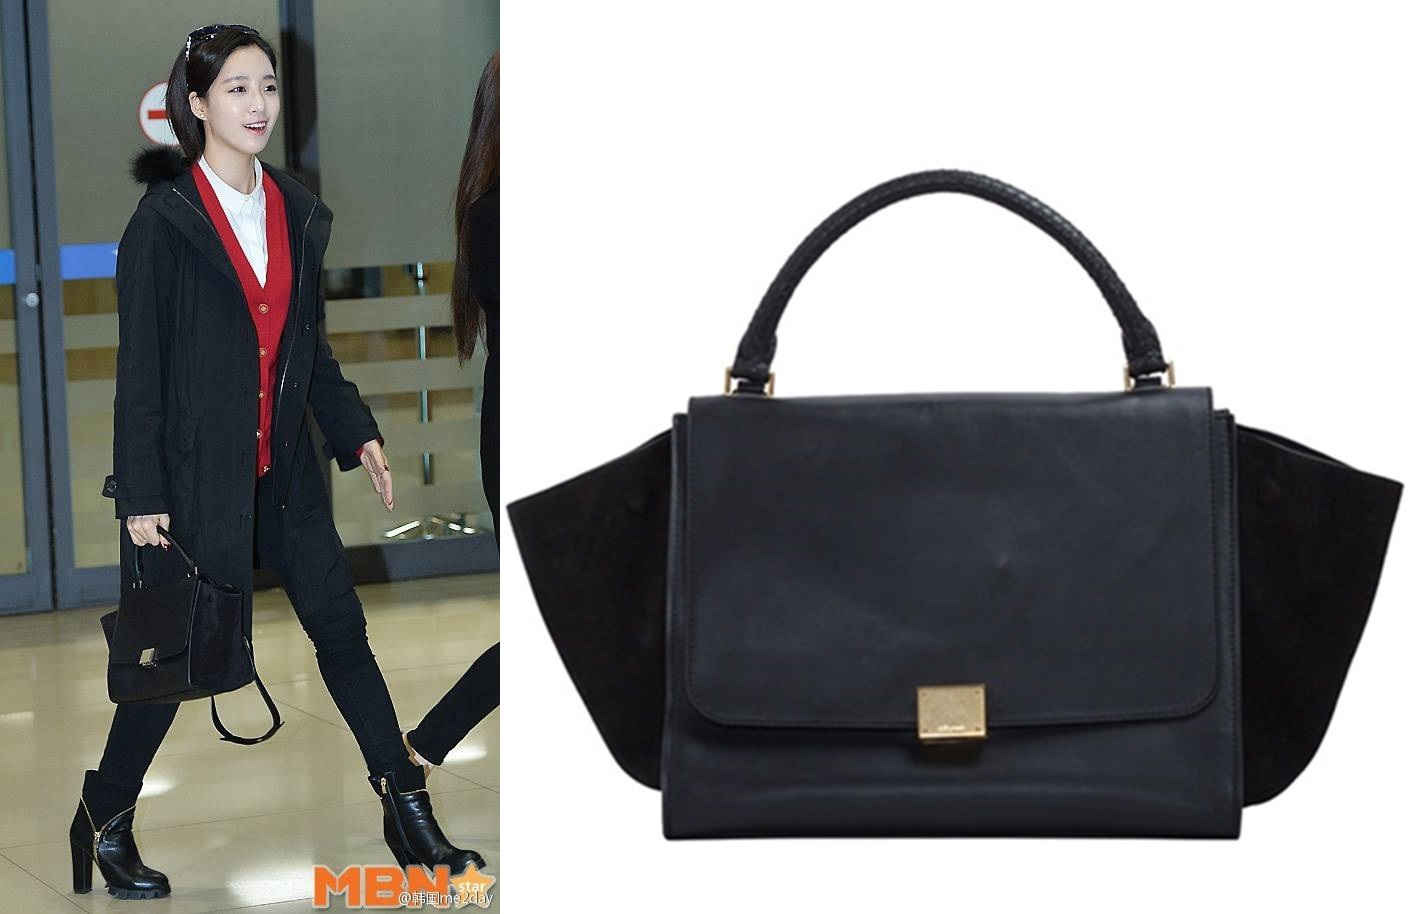 celine sale bags - celine trapeze leather tote bag